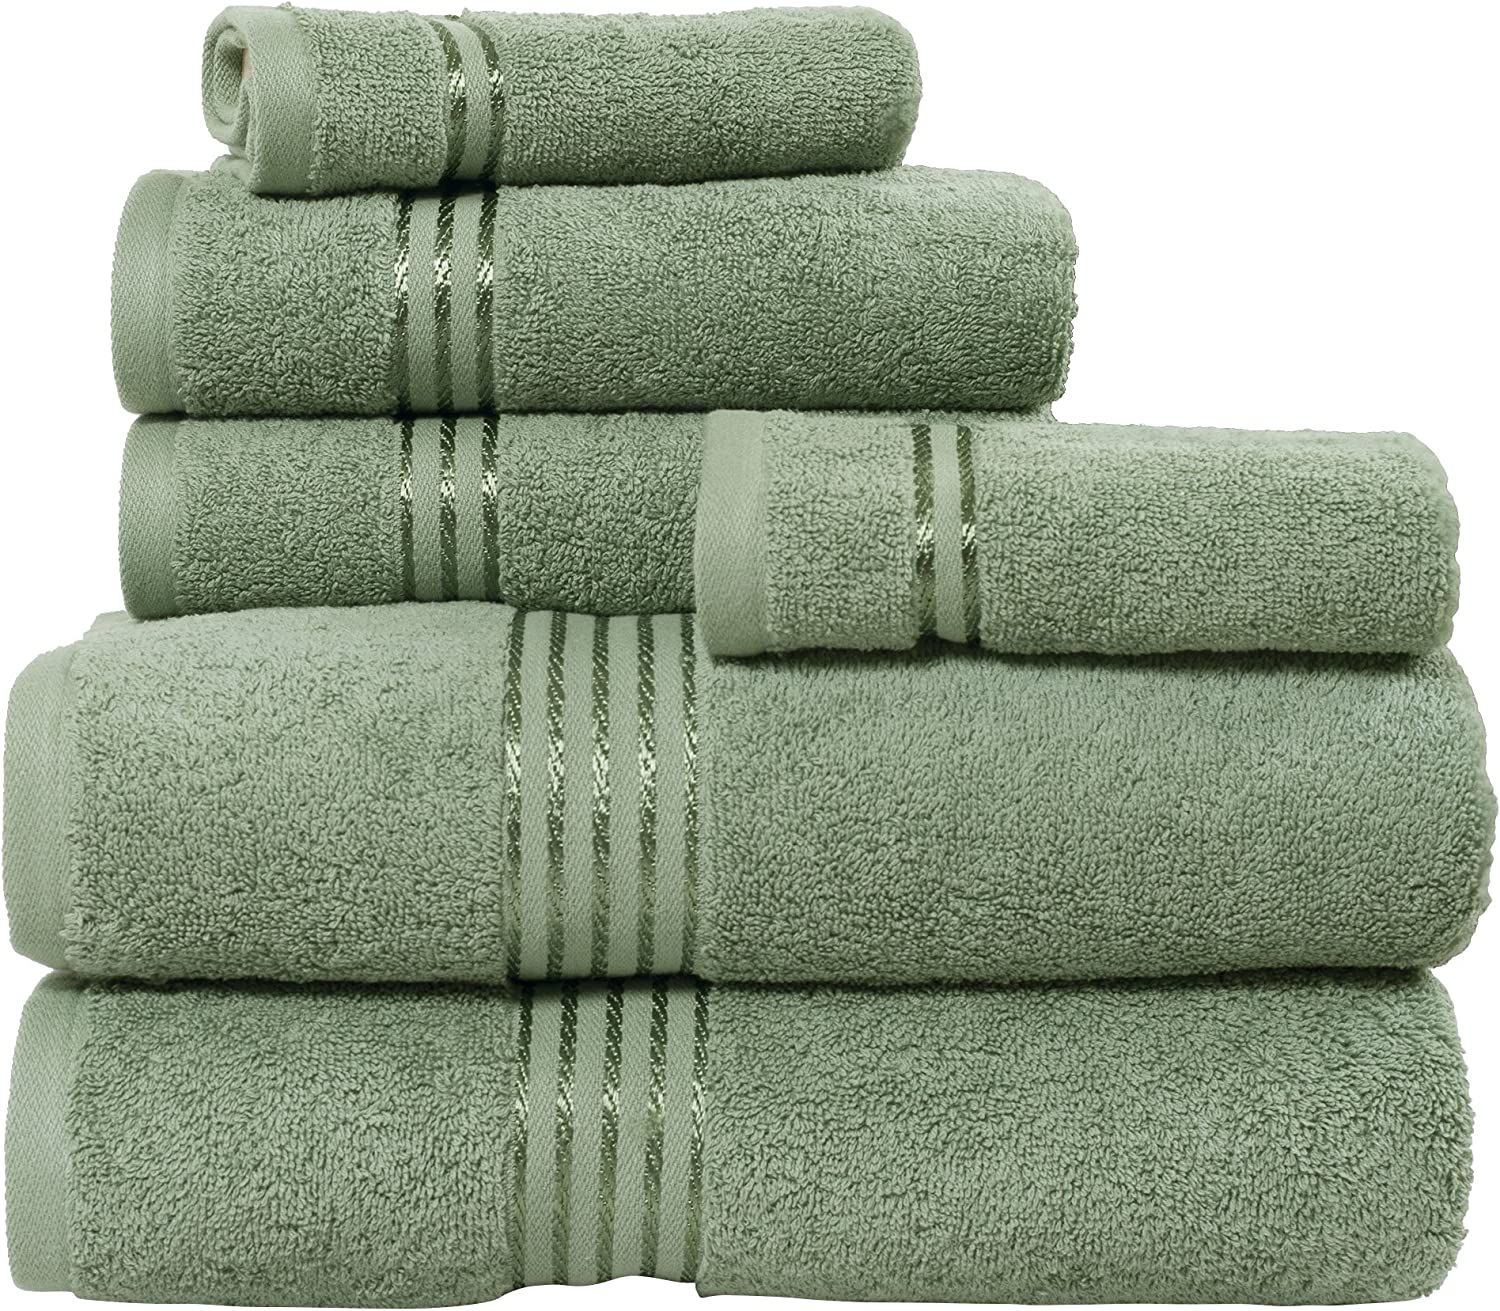 Lavish Genuine Home 100% Cotton Sales of SALE items from new works Hotel 6 Piece Set - Green Towel